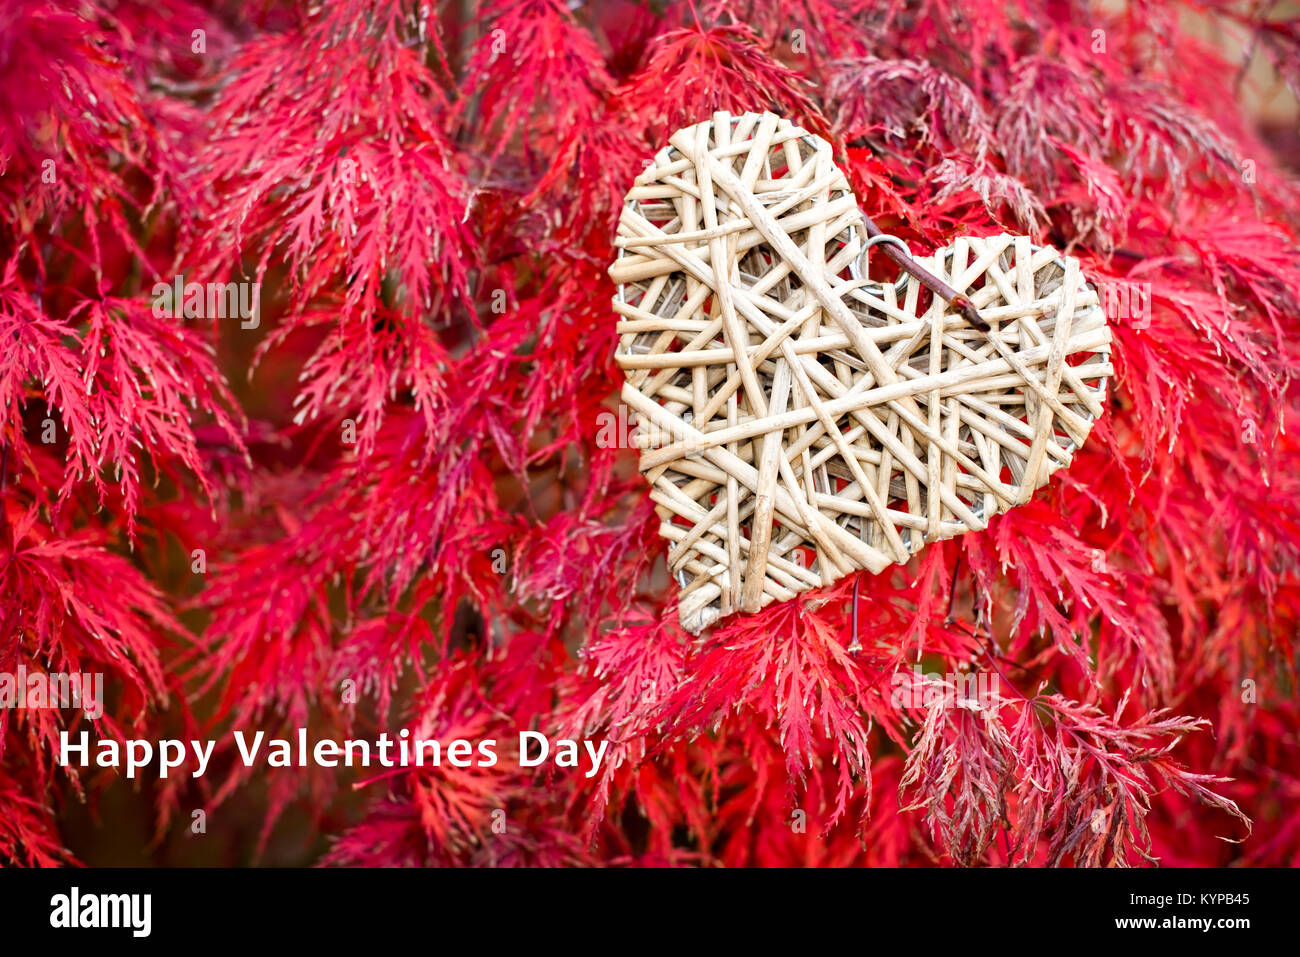 Valentines day card, wooden heart on red maple leaves background - Stock Image